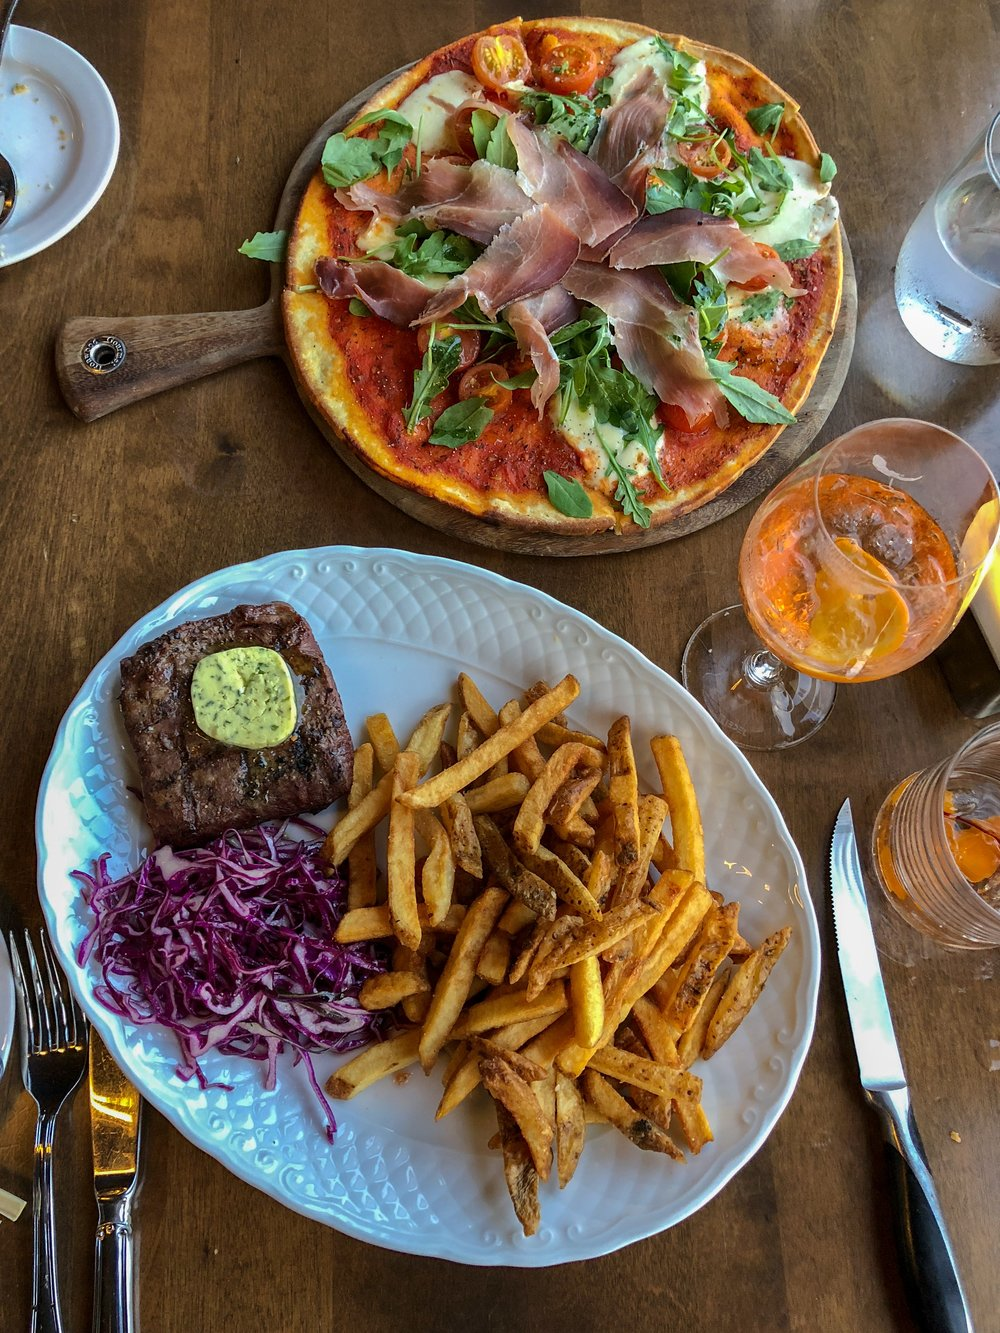 Pizza and Steak Frites at 260